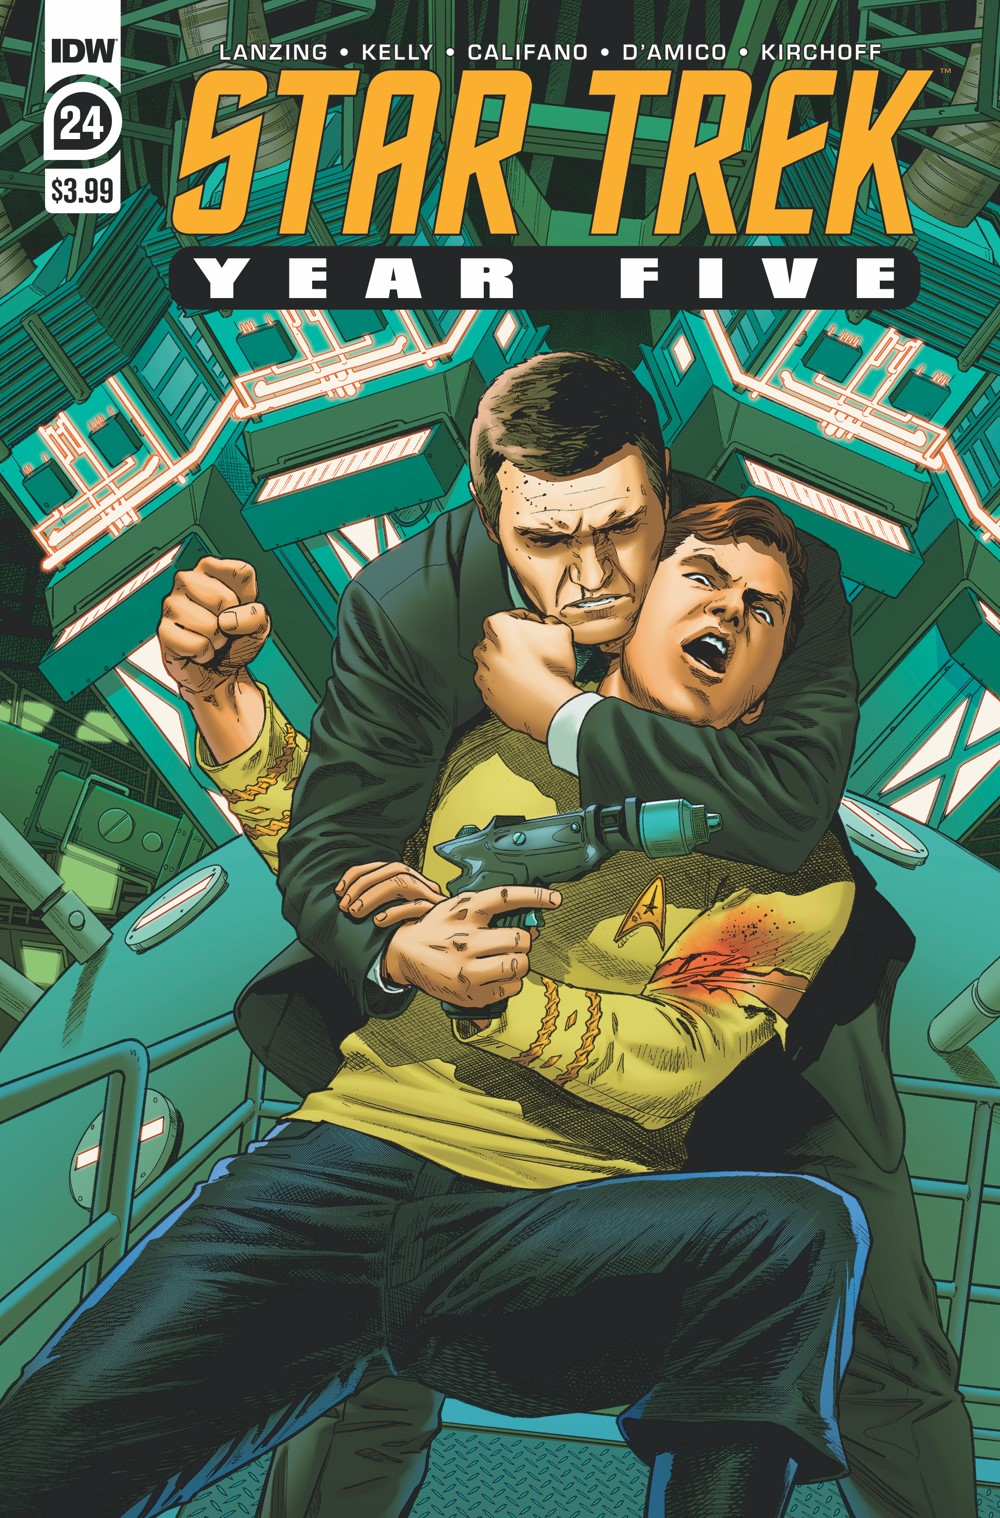 ST_YearFive24-cover ComicList Previews: STAR TREK YEAR FIVE #24